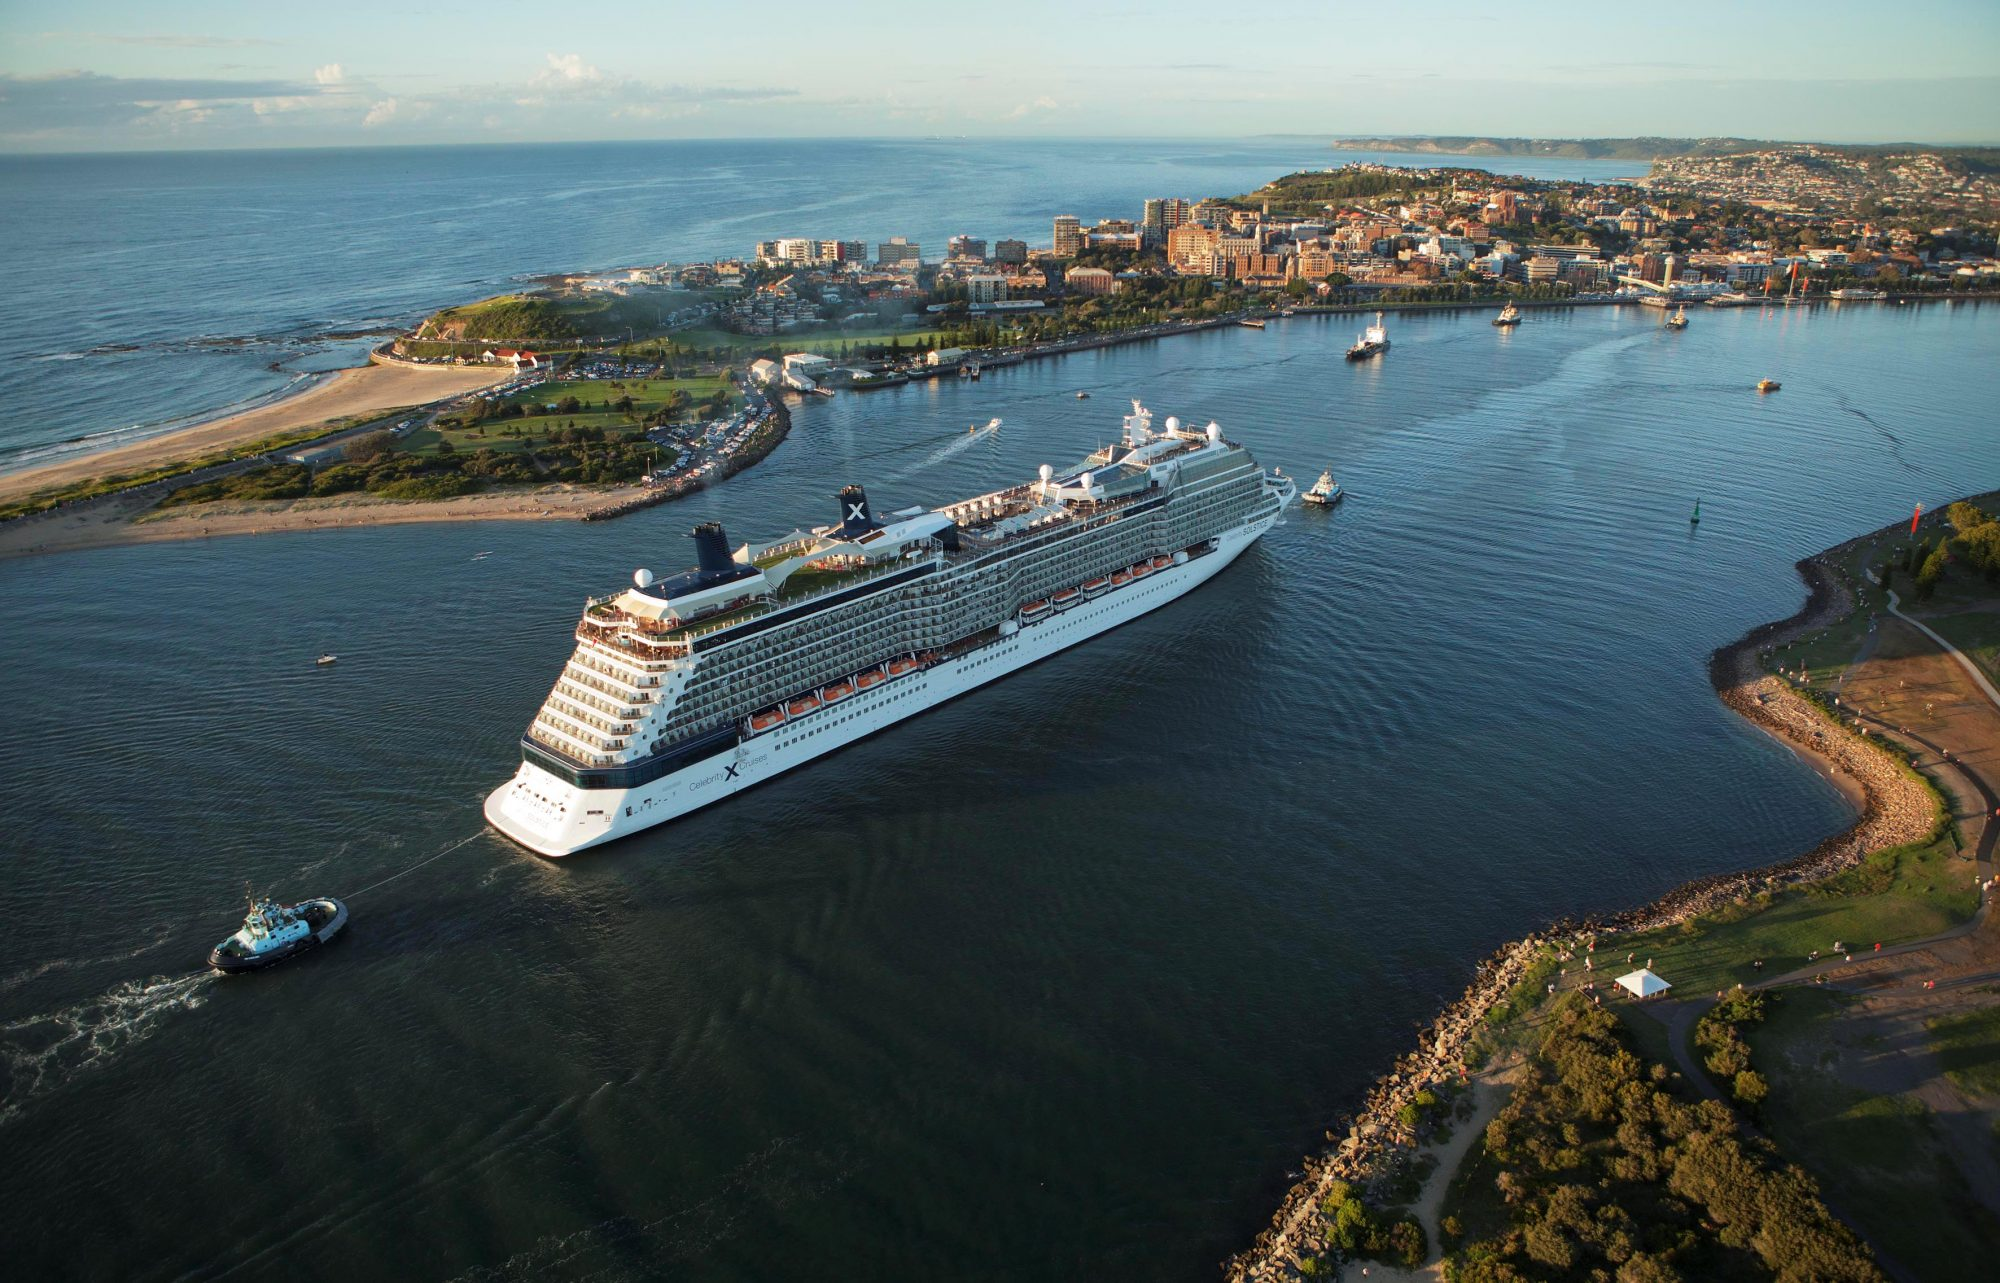 The arrival of 317-metre Celebrity Solstice to Port of Newcastle on Wednesday will mark the start of the city's 2019-20 cruise season